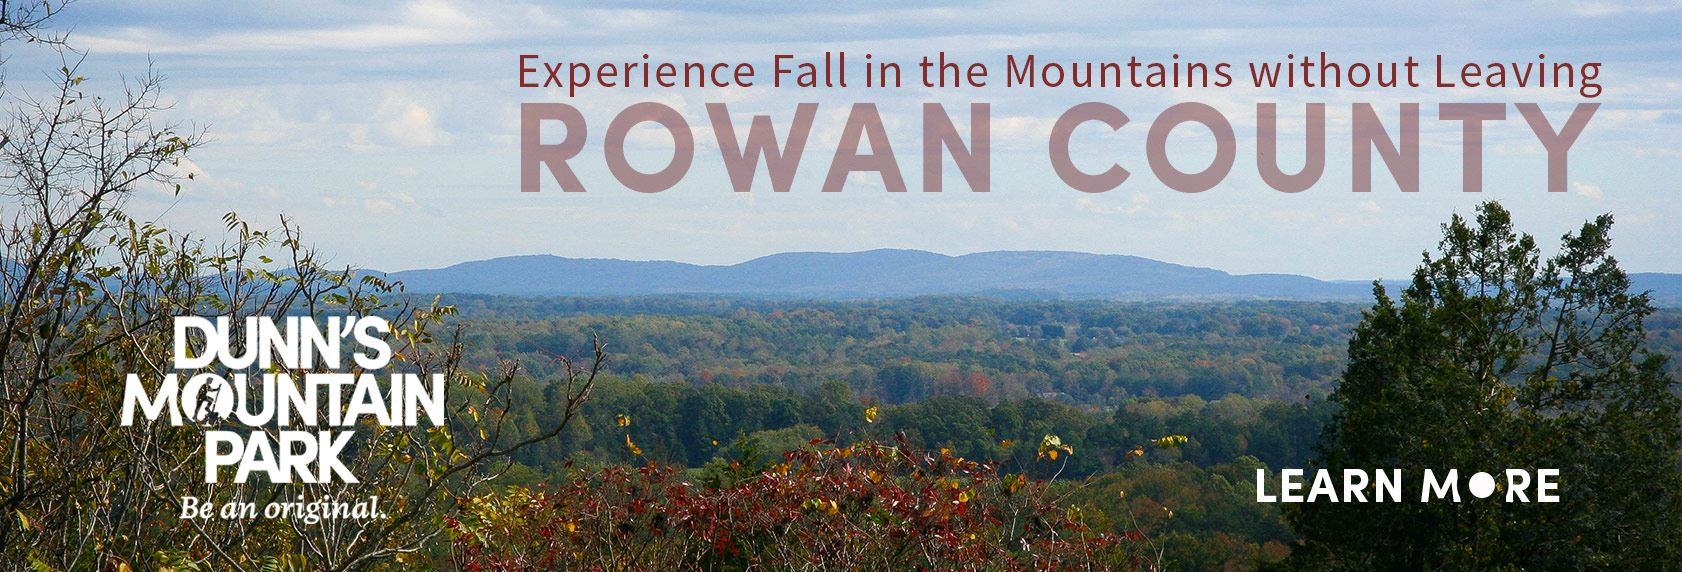 Experience fall in the mountains without leaving Rowan County by visiting Dunn's Mountain Park -